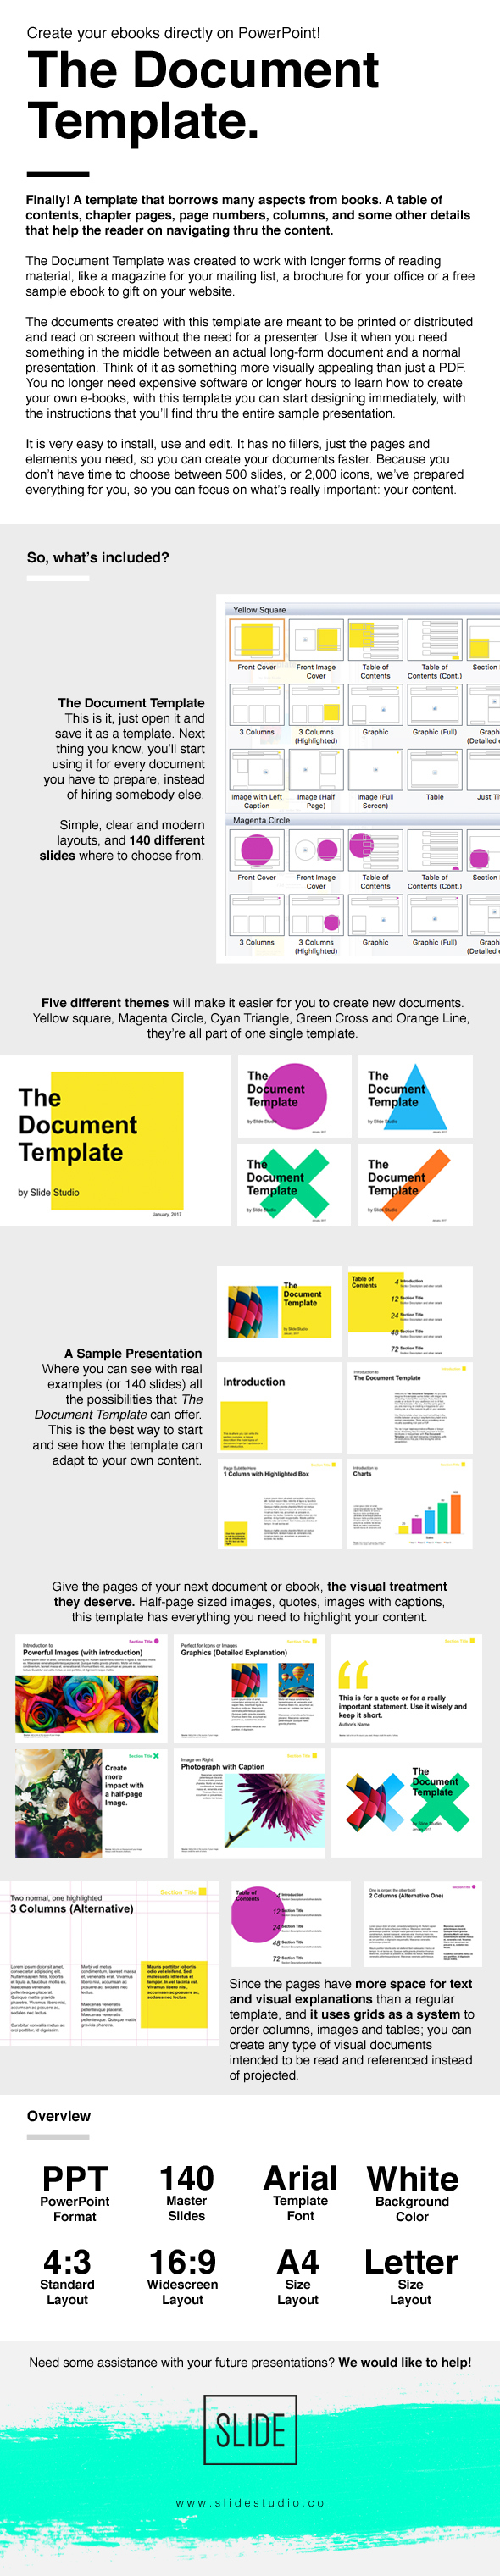 The Document Template - PowerPoint Templates Presentation Templates